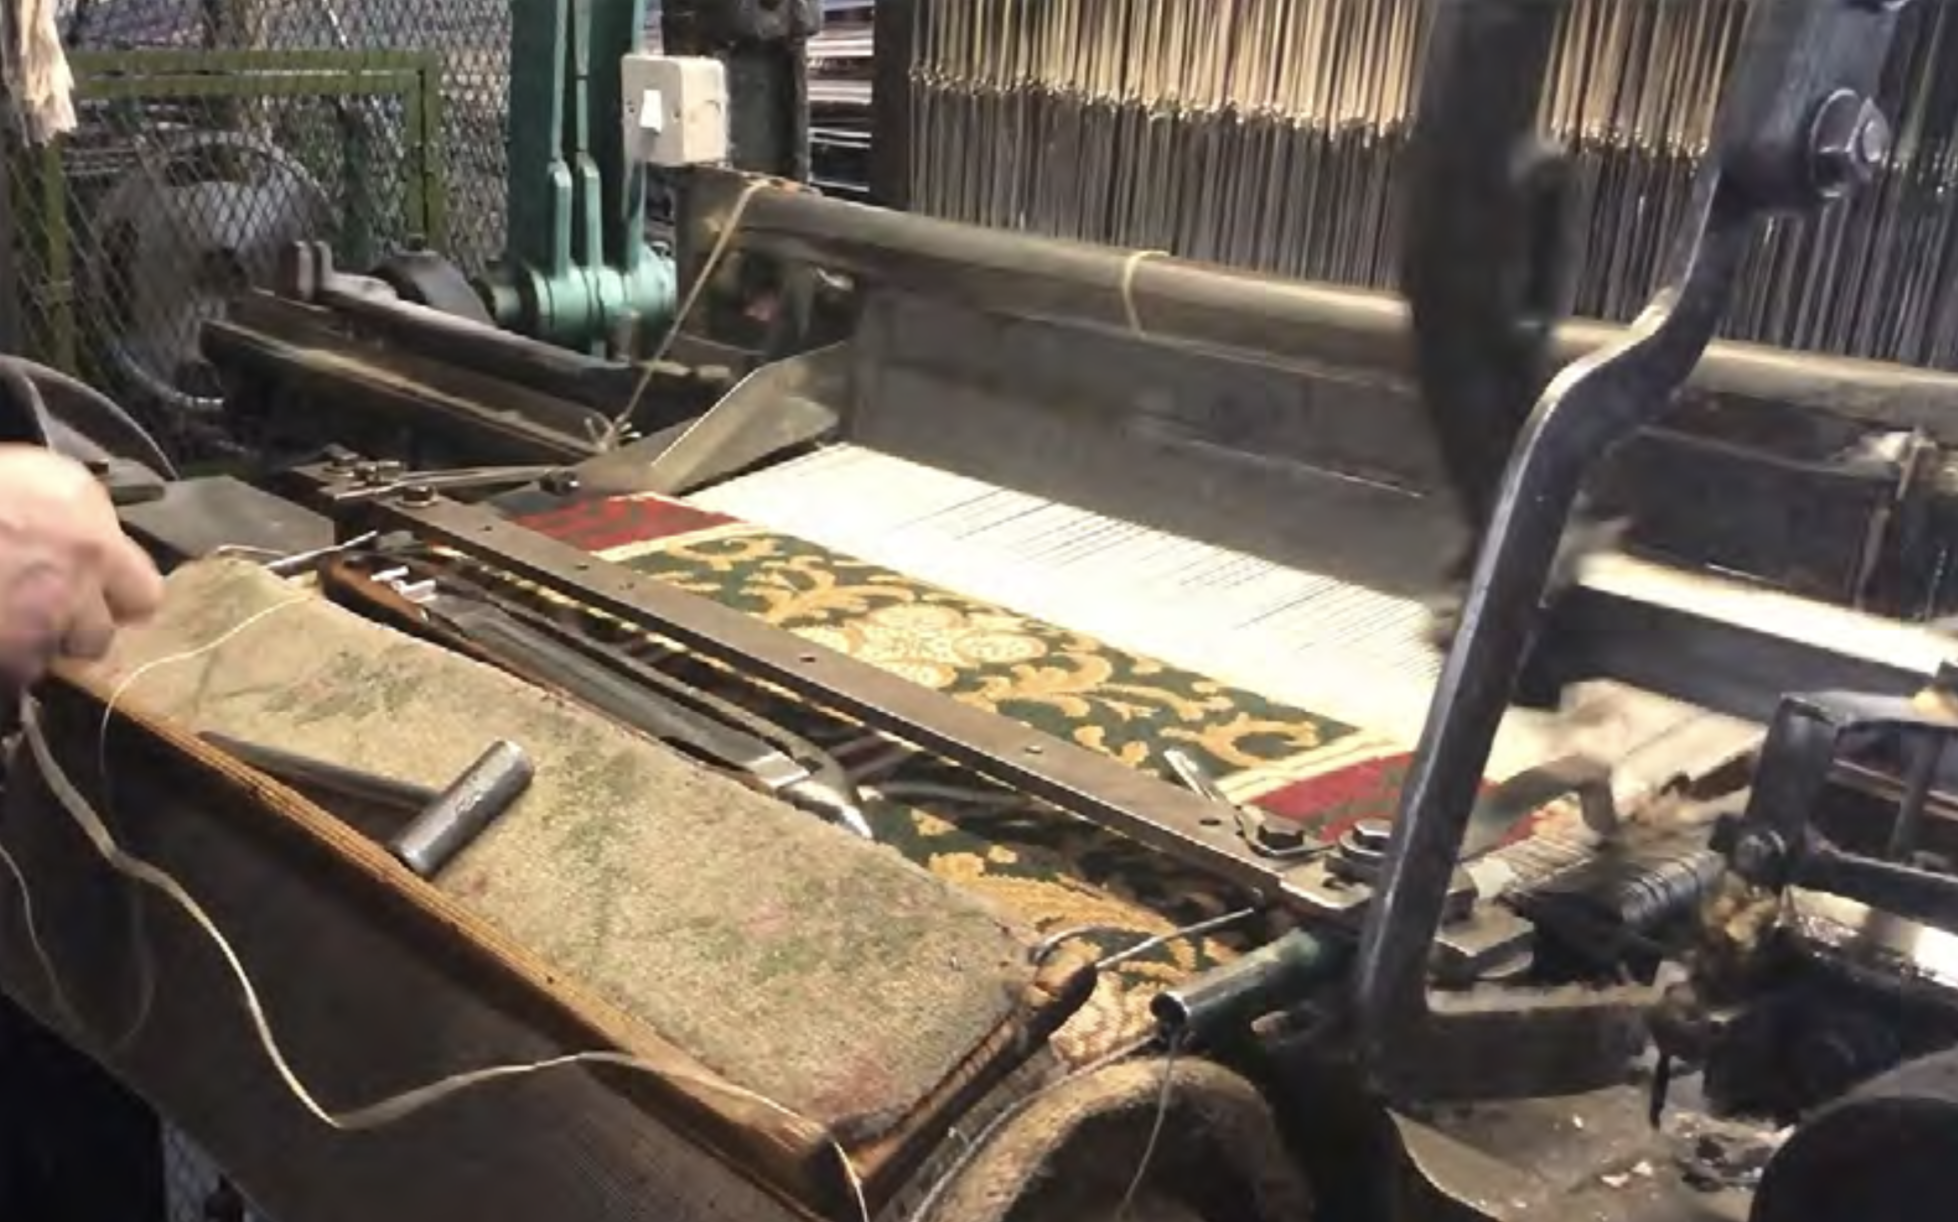 3. The new Carlyle's House carpet on the loom, ©Woodward Grosvenor Ltd